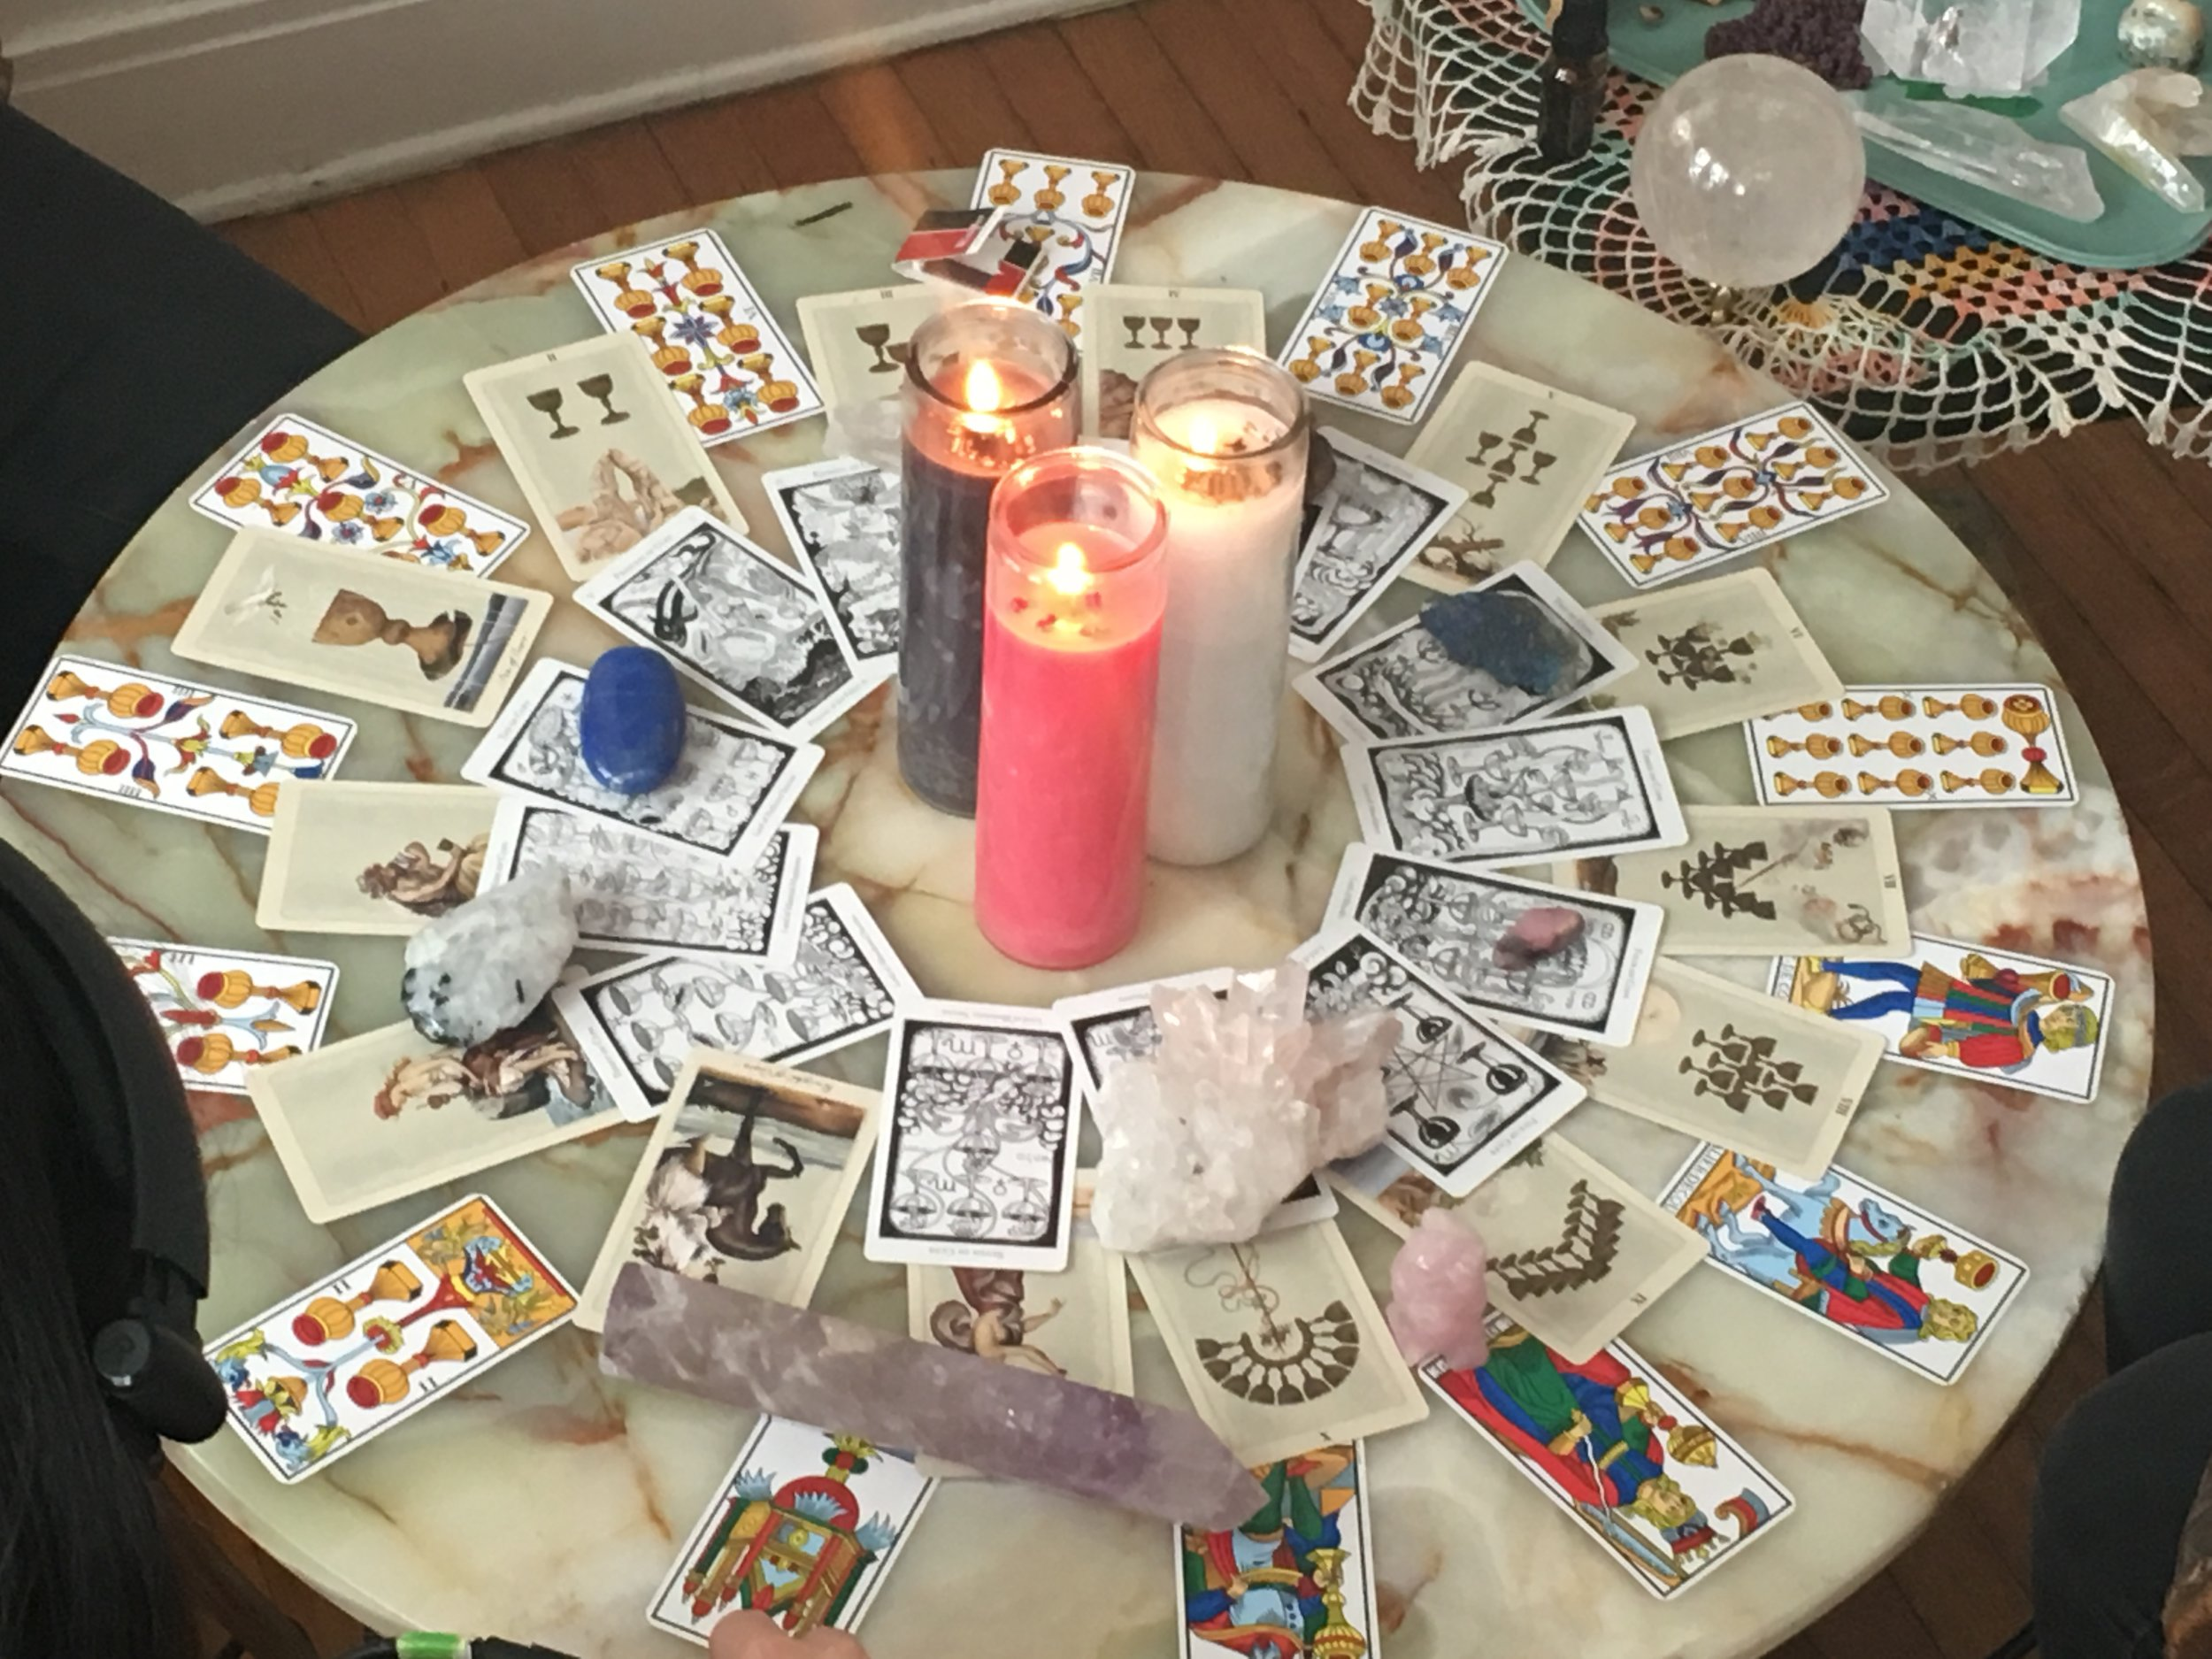 Tarot cards, crystals, and candles.